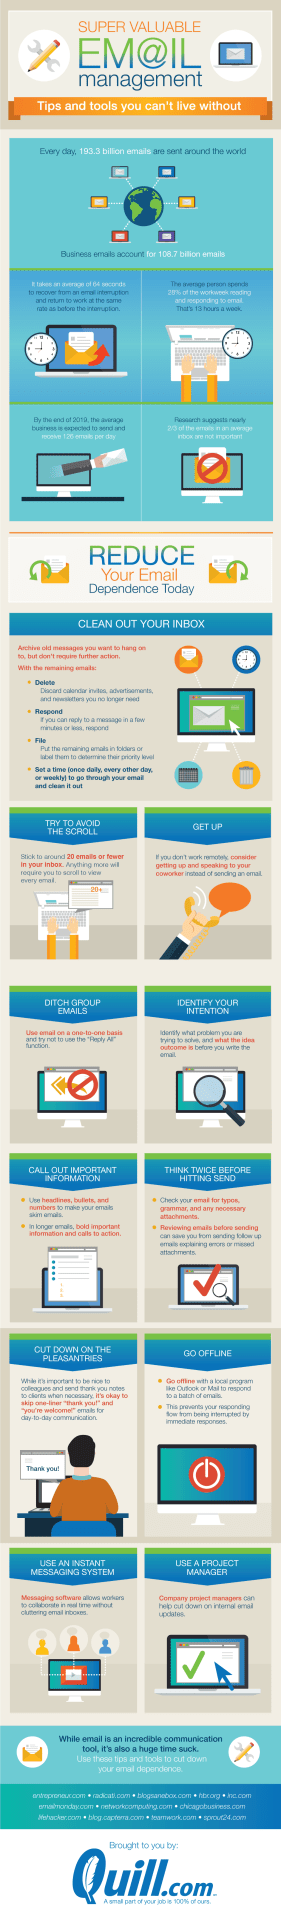 email management infographic